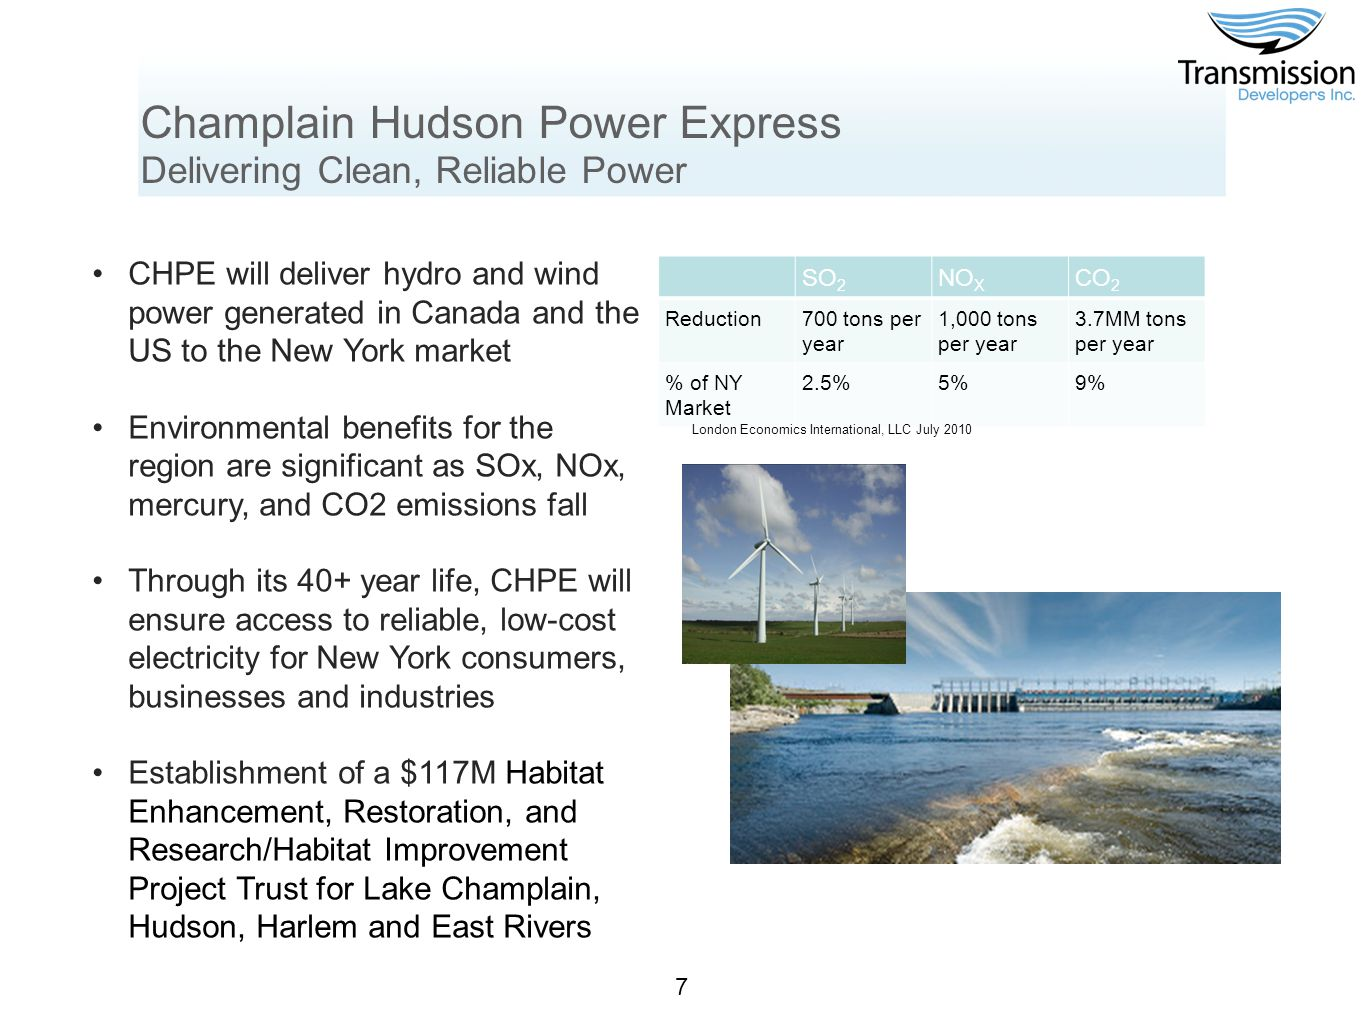 Champlain Hudson Power Express Broad Support Twenty members of New York Congressional delegation NY State and NY City Economic Development Corporations Local chapters of the International Union of Operating Engineers and Laborers International Union of North America NY Energy Consumers Council Coalition Helping Organize a Kleaner Environment Three daily newspapers editorialized in support of the project New York League of Conservation Voters 8